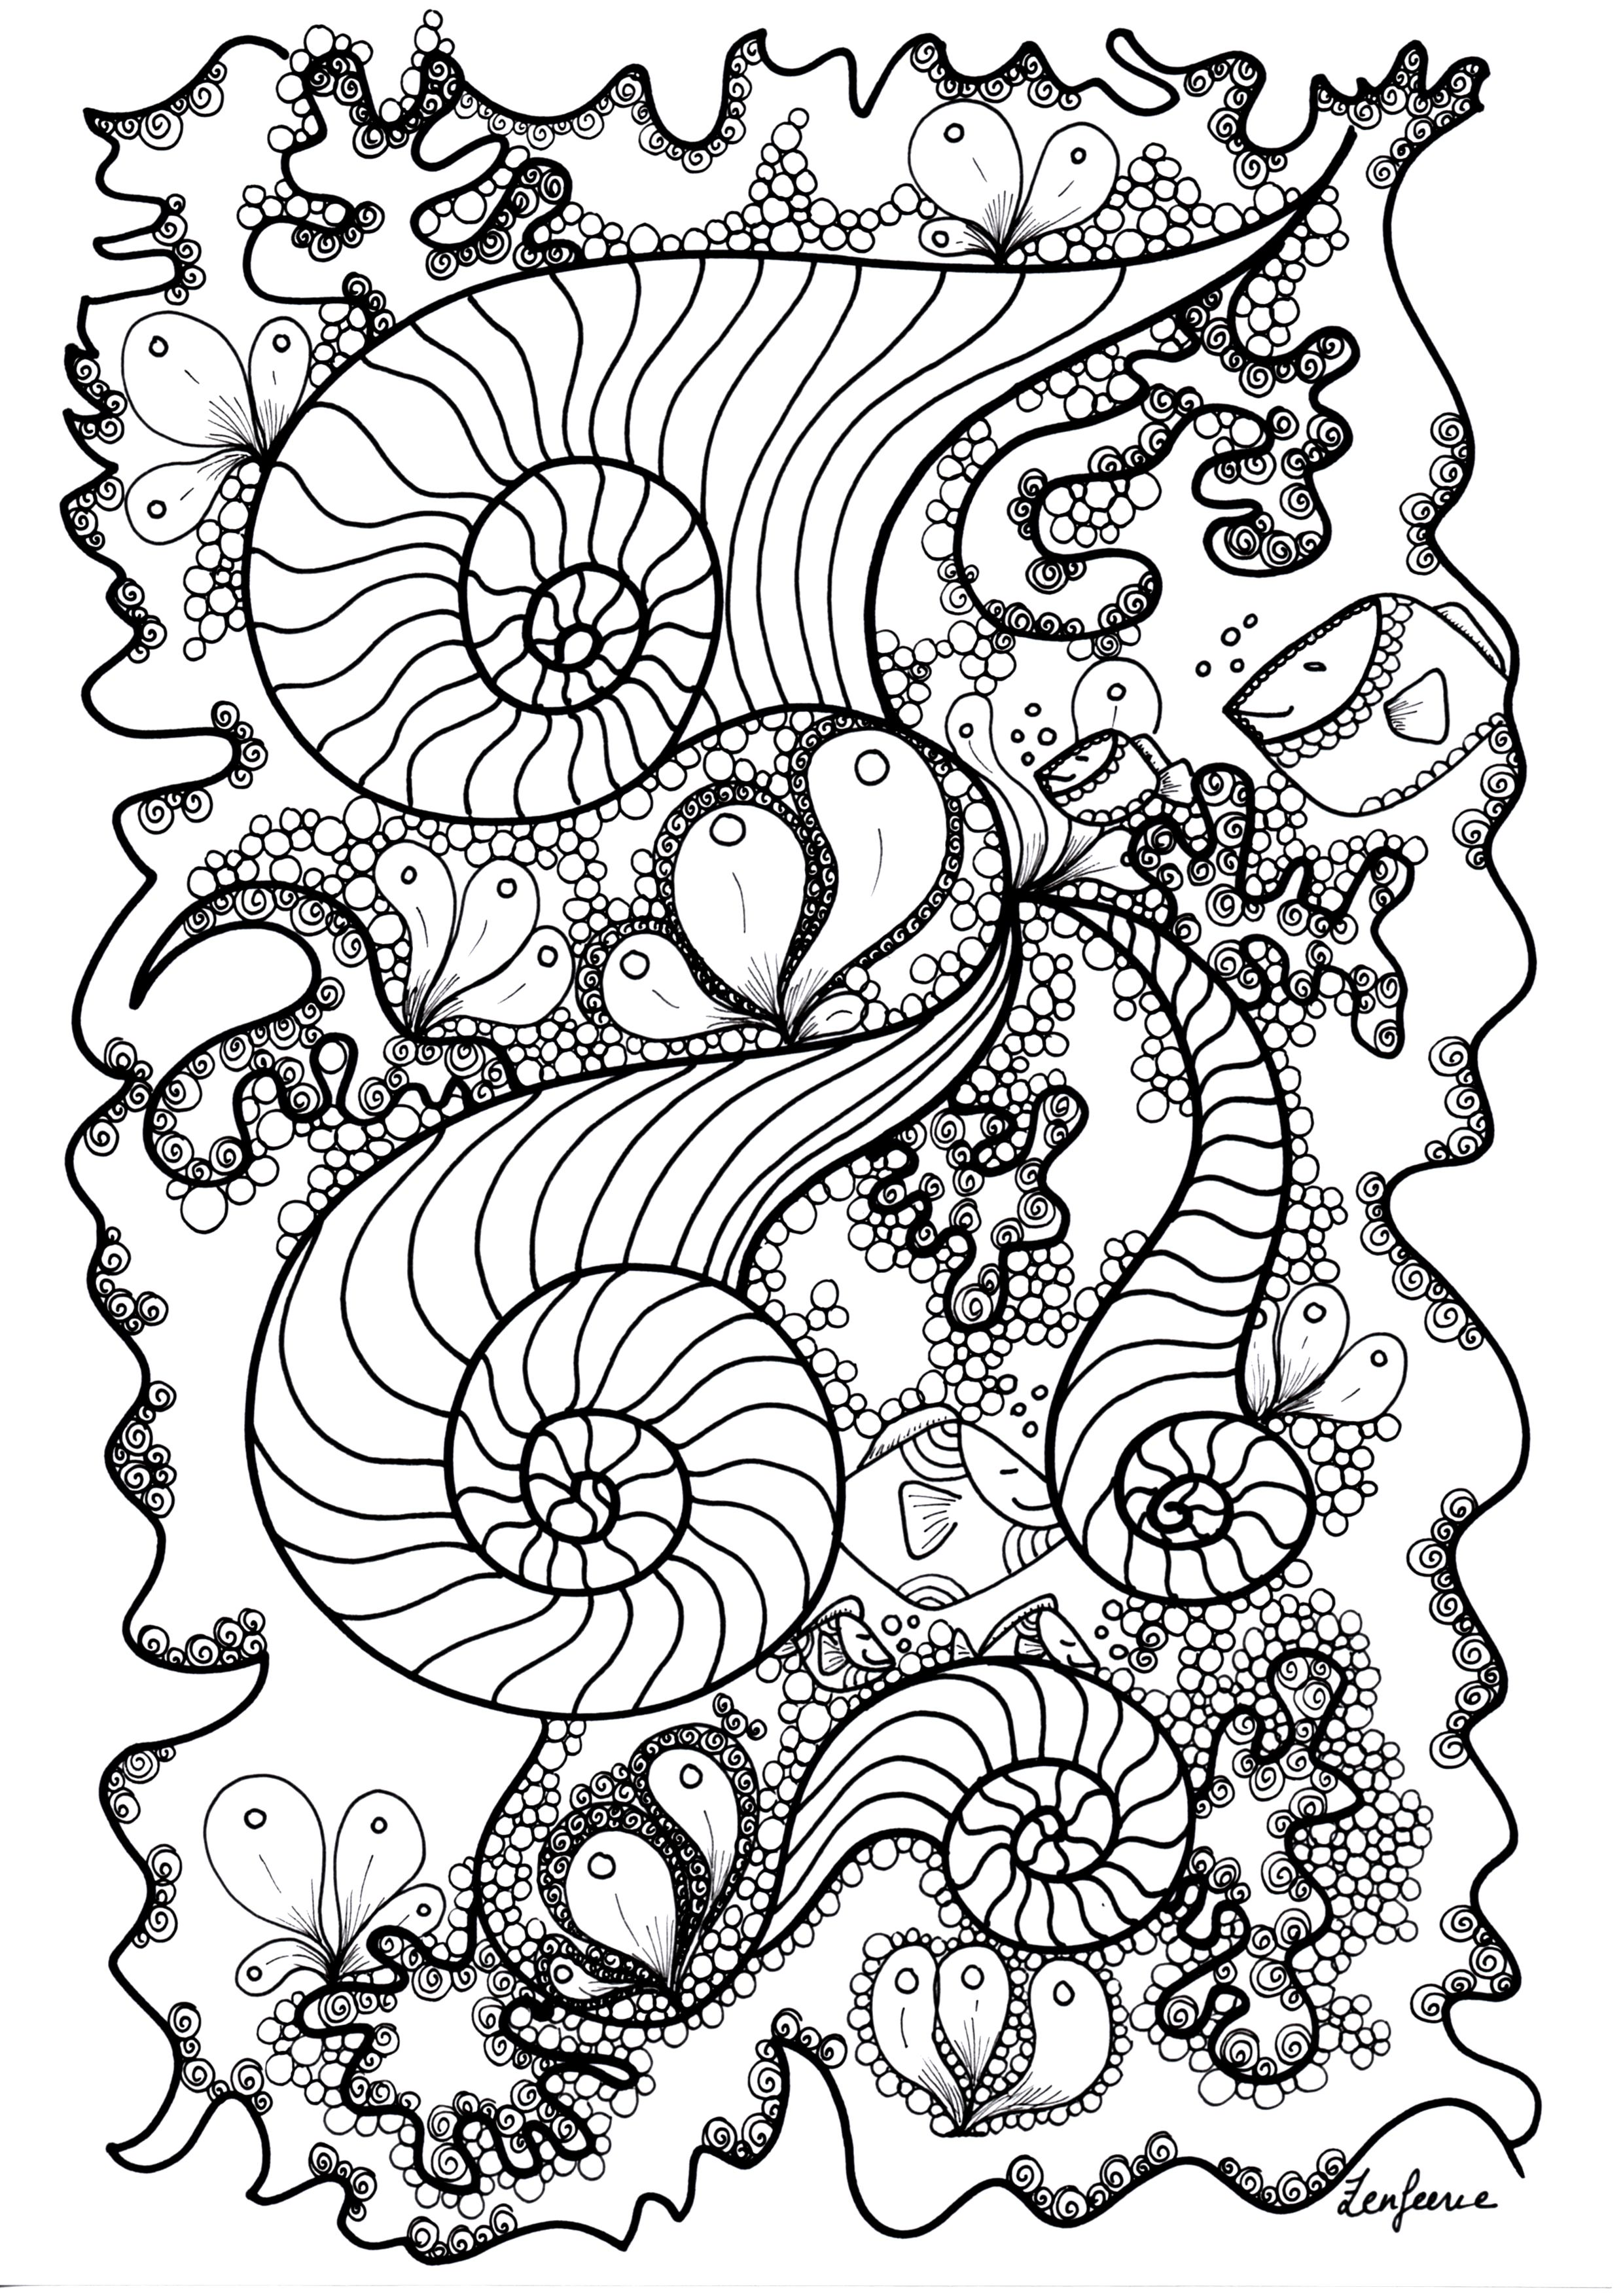 Fishes hidden in a magnificient Zentangle coloring page